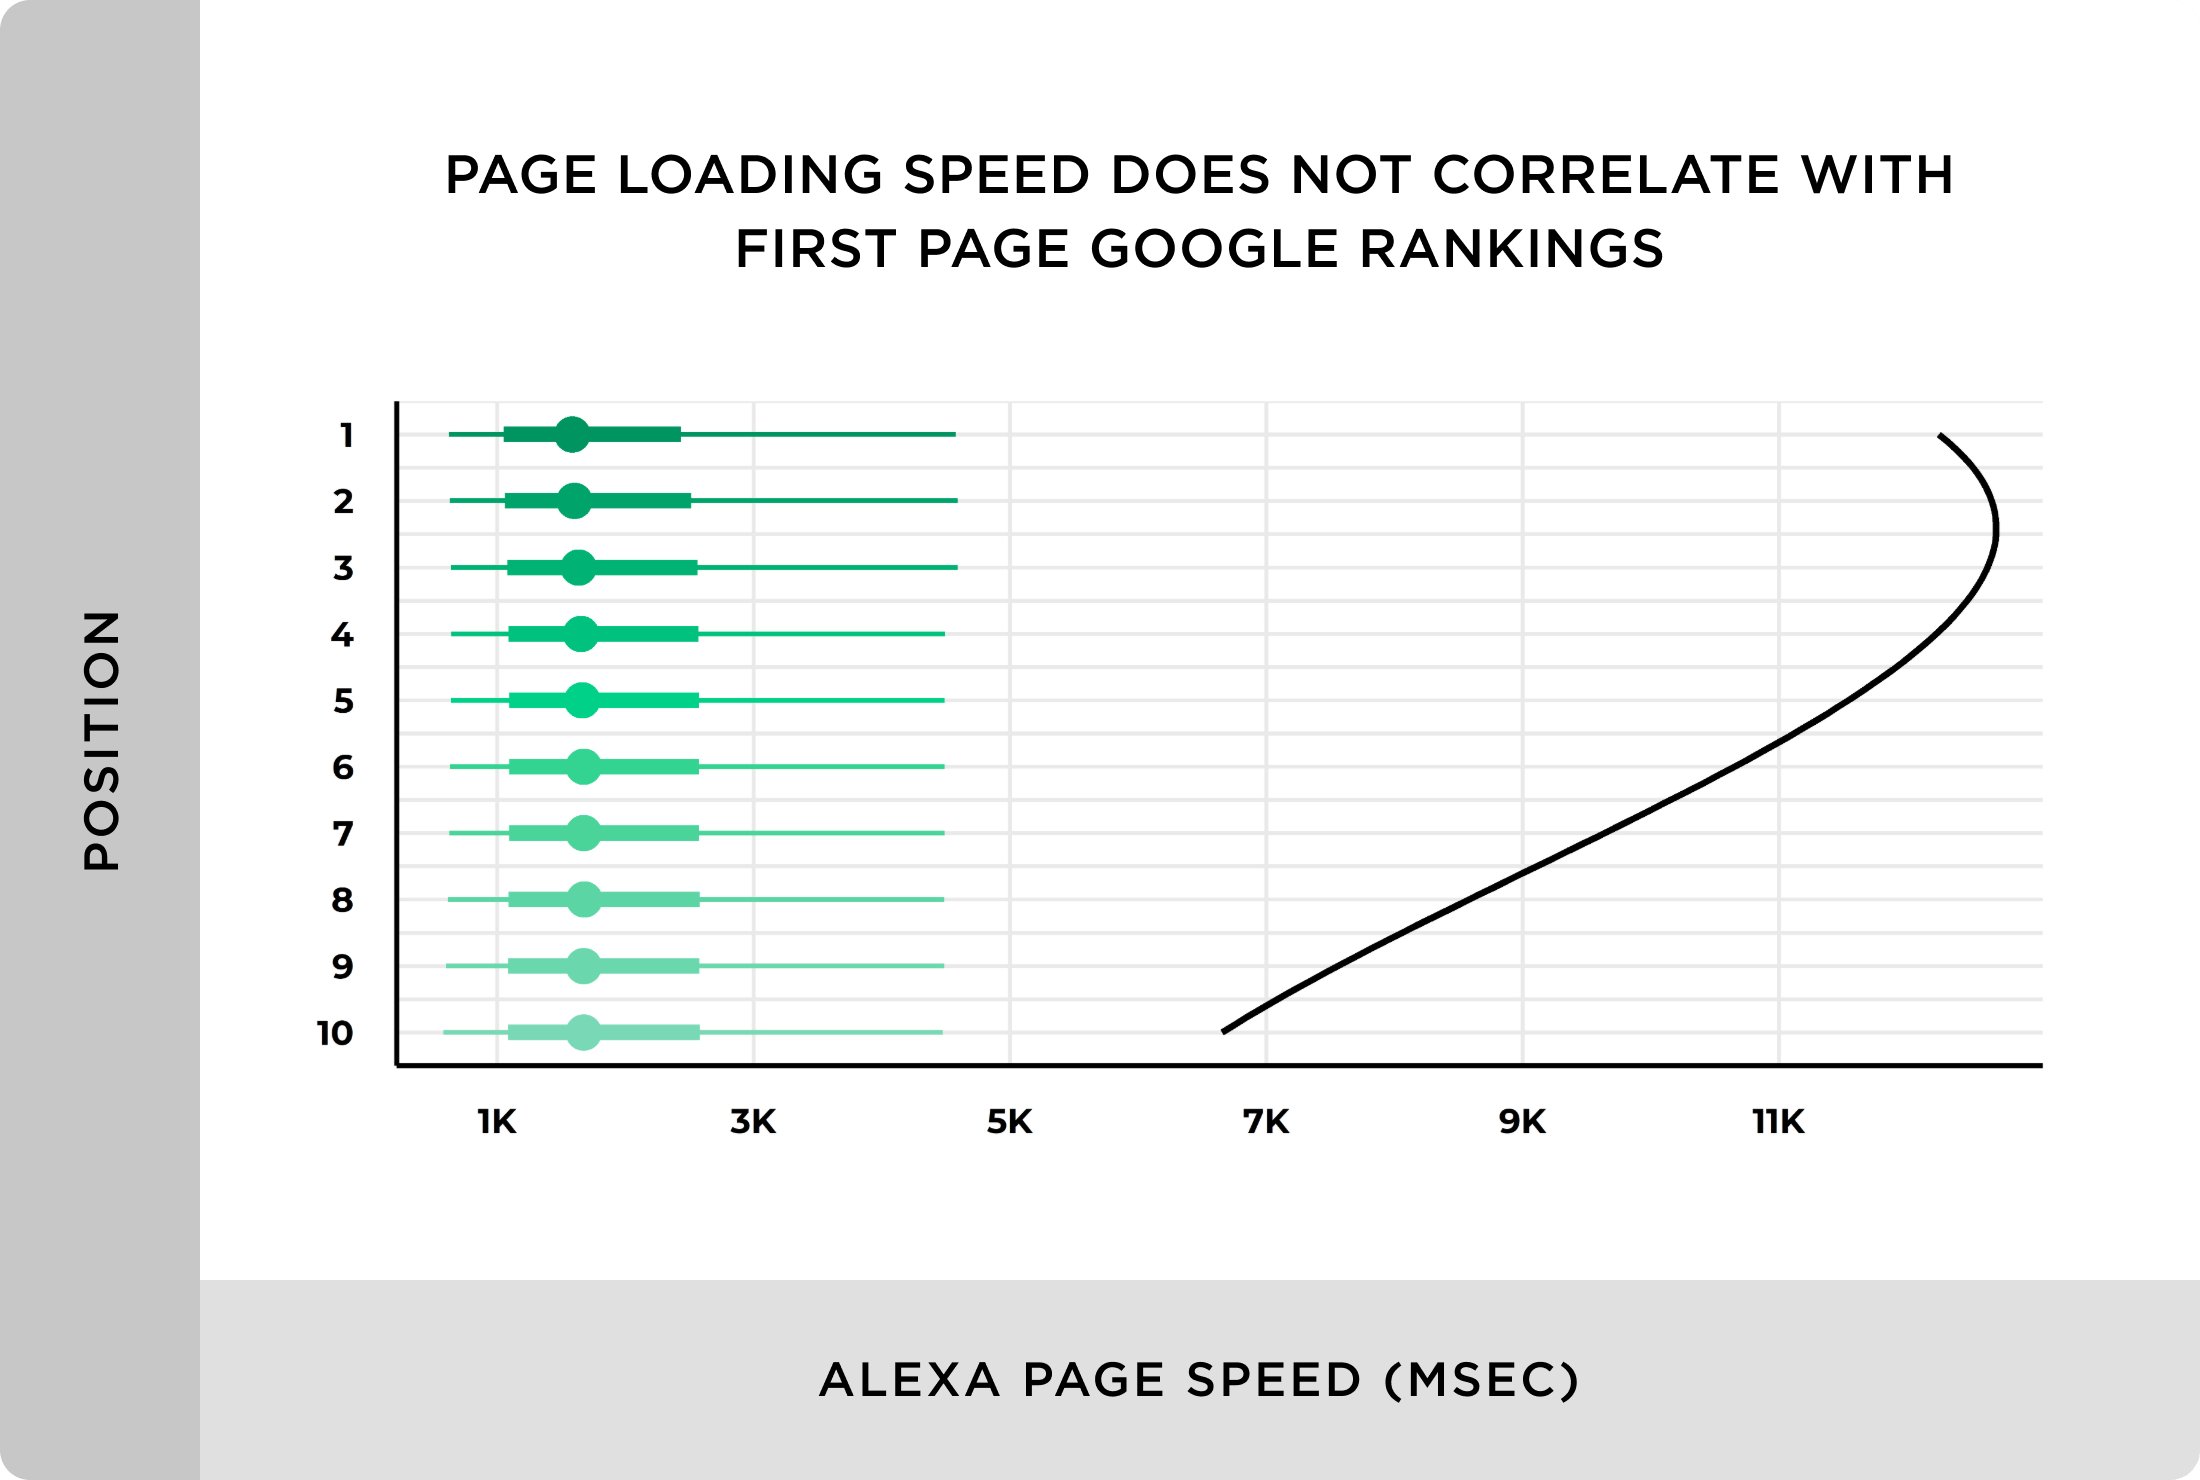 Page loading speed does not correlate with first page Google rankings